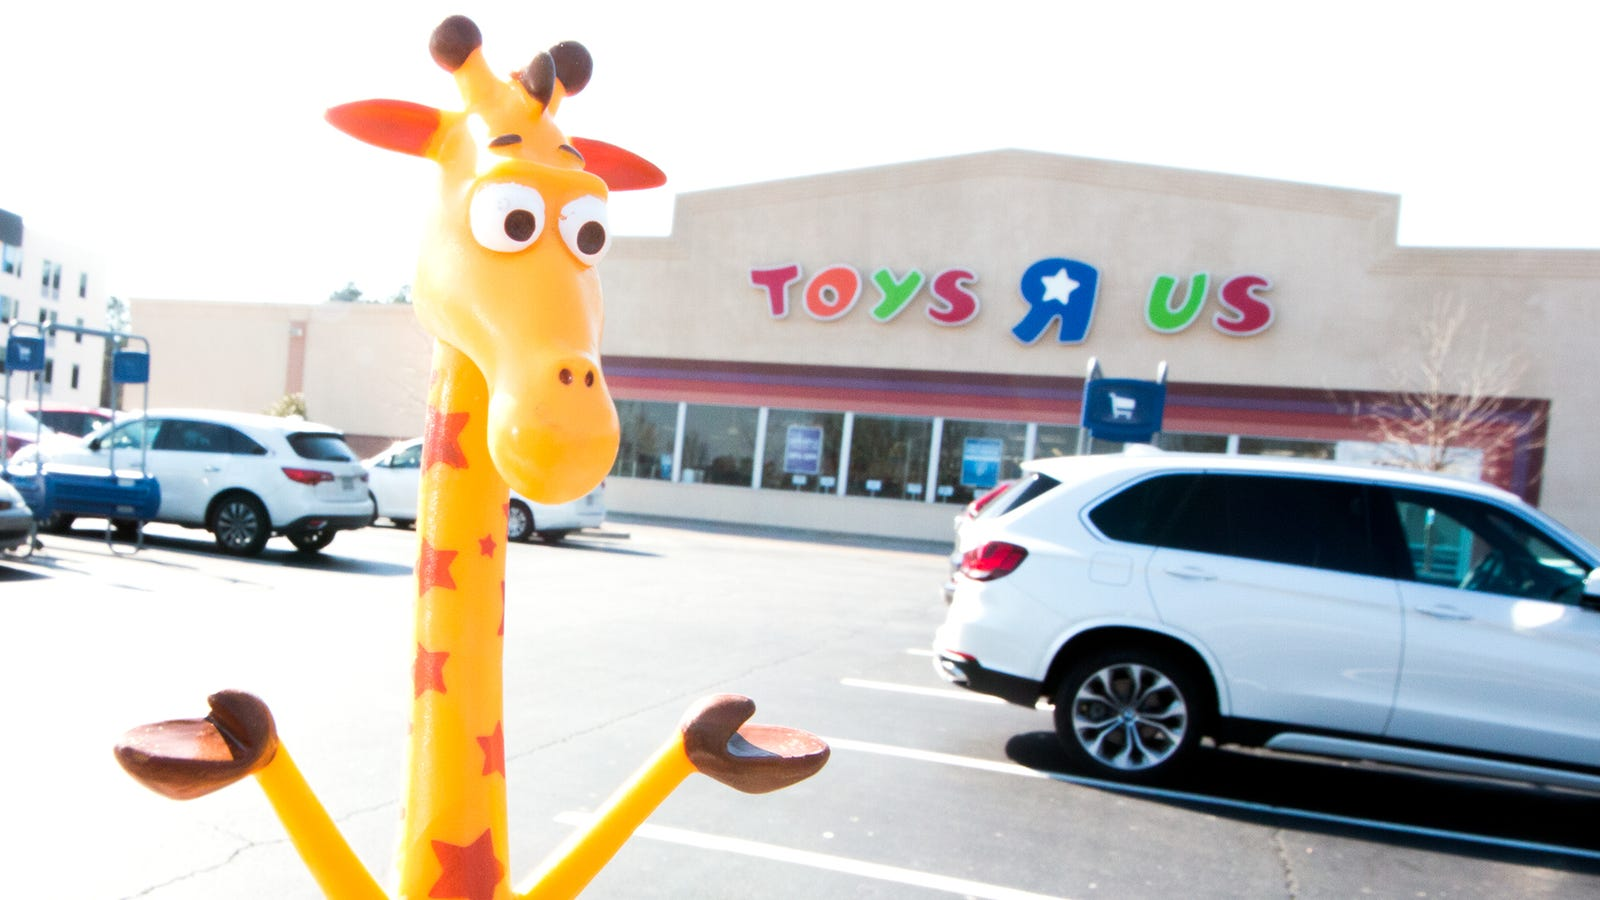 Toys 'R' Us, RIP: One Last Trip To Toy Heaven